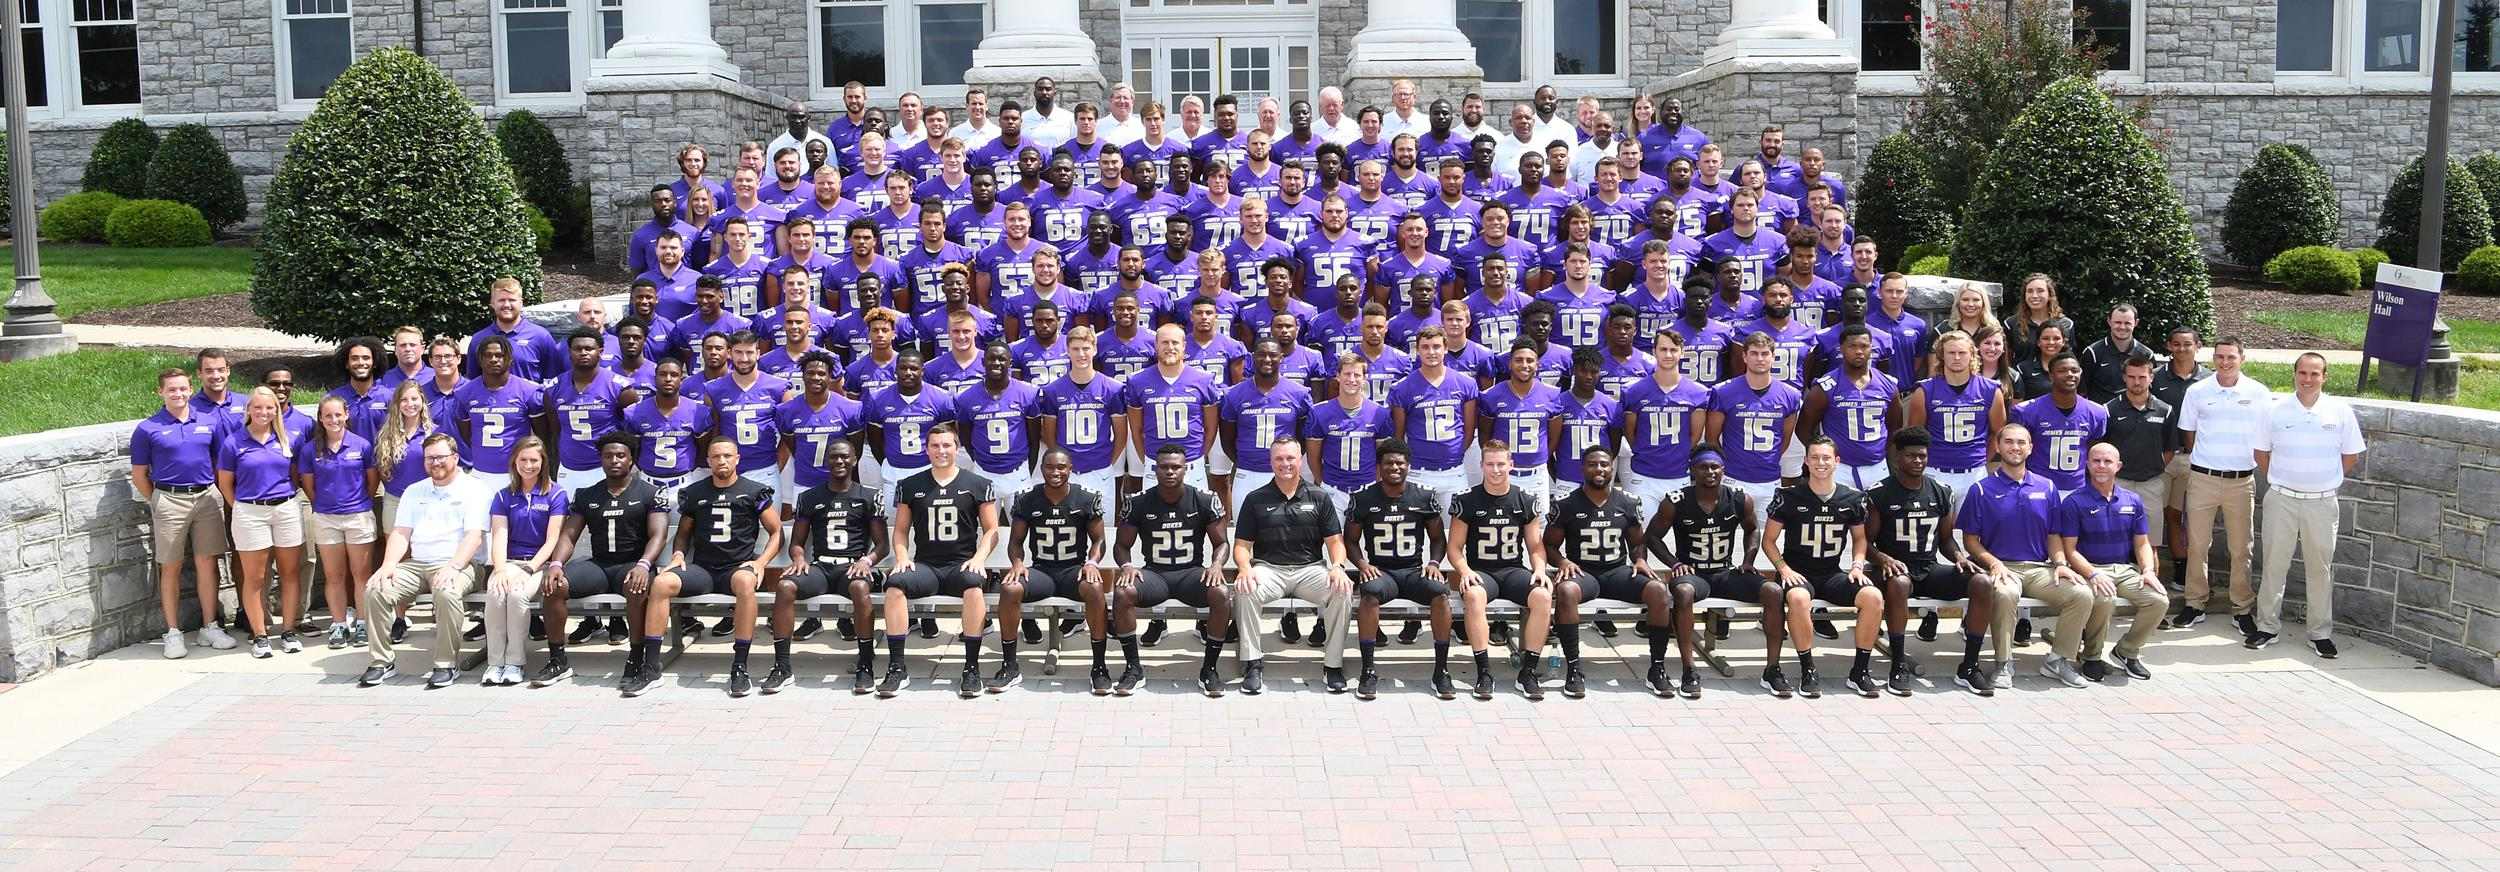 Alabama Football Roster 2018 Football Roster James Madison University Athletics